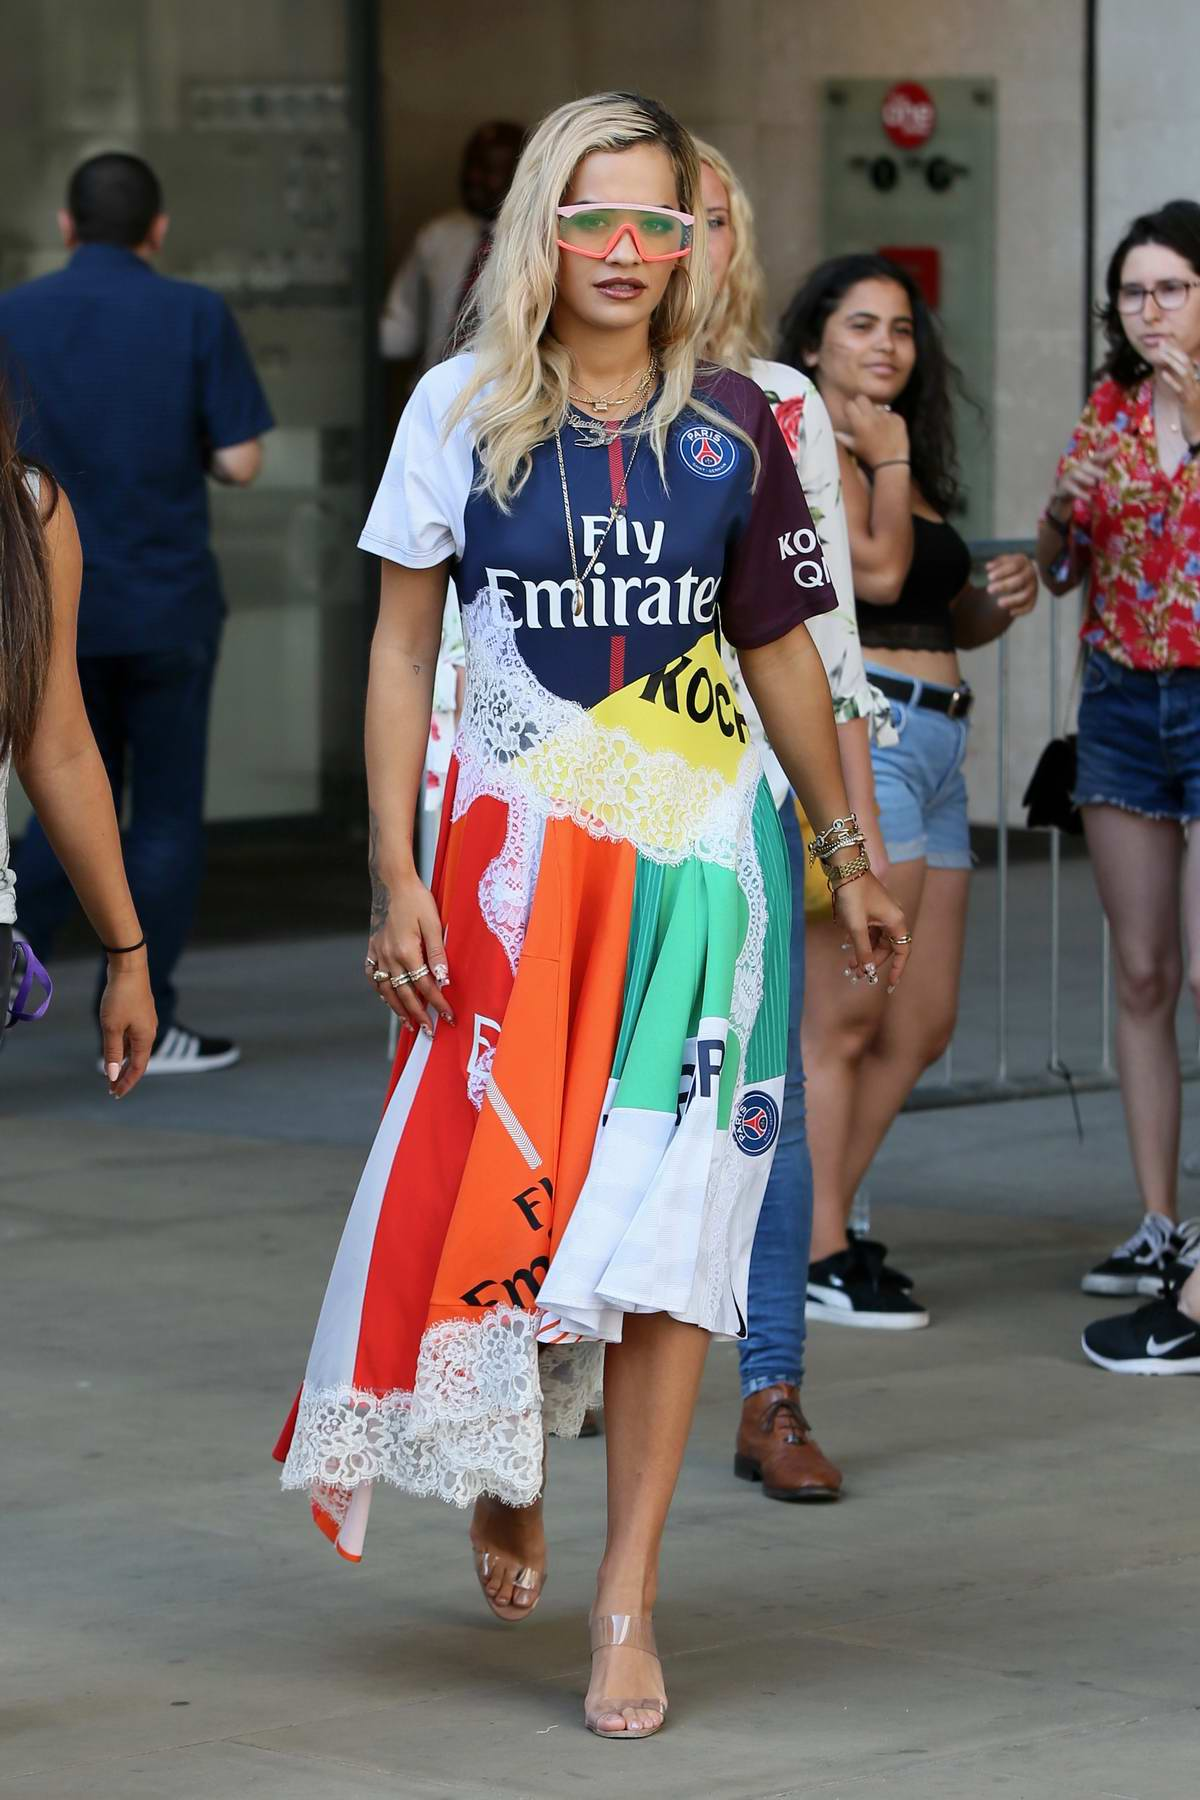 Rita Ora wears a colorful patchwork dress while visiting BBC Radio 1 in London, UK